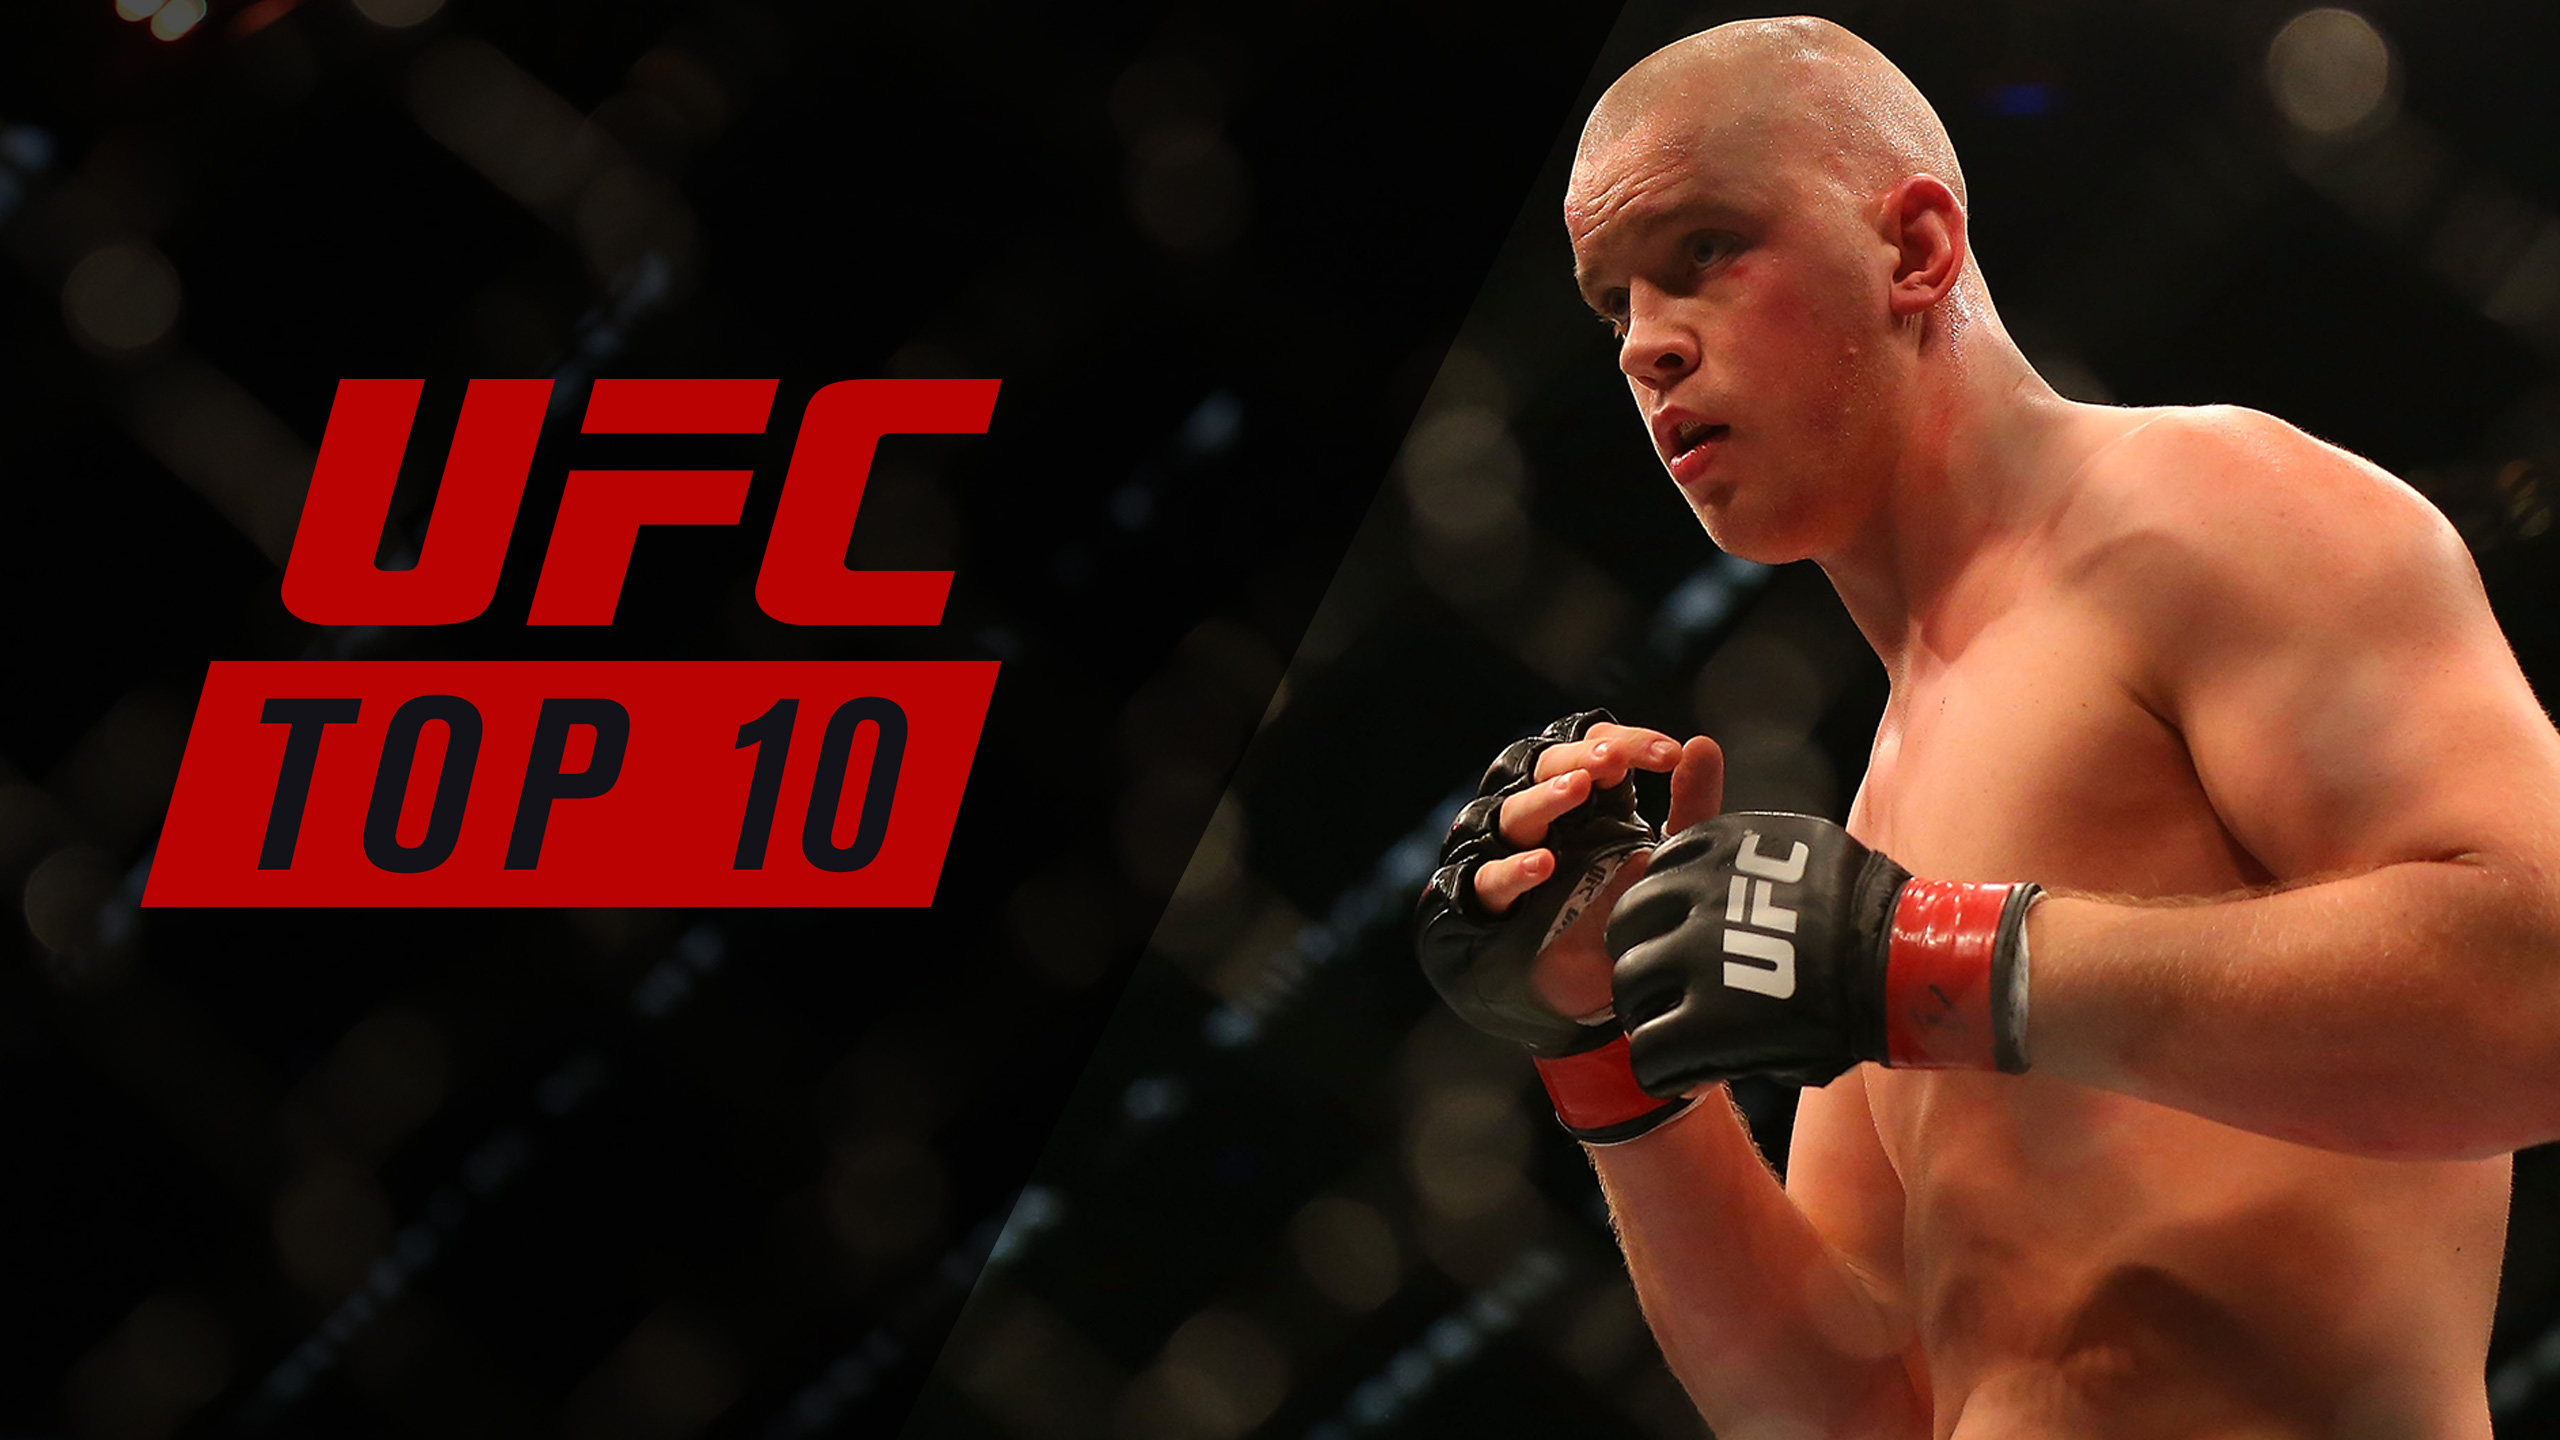 UFC Top 10: European Fighters